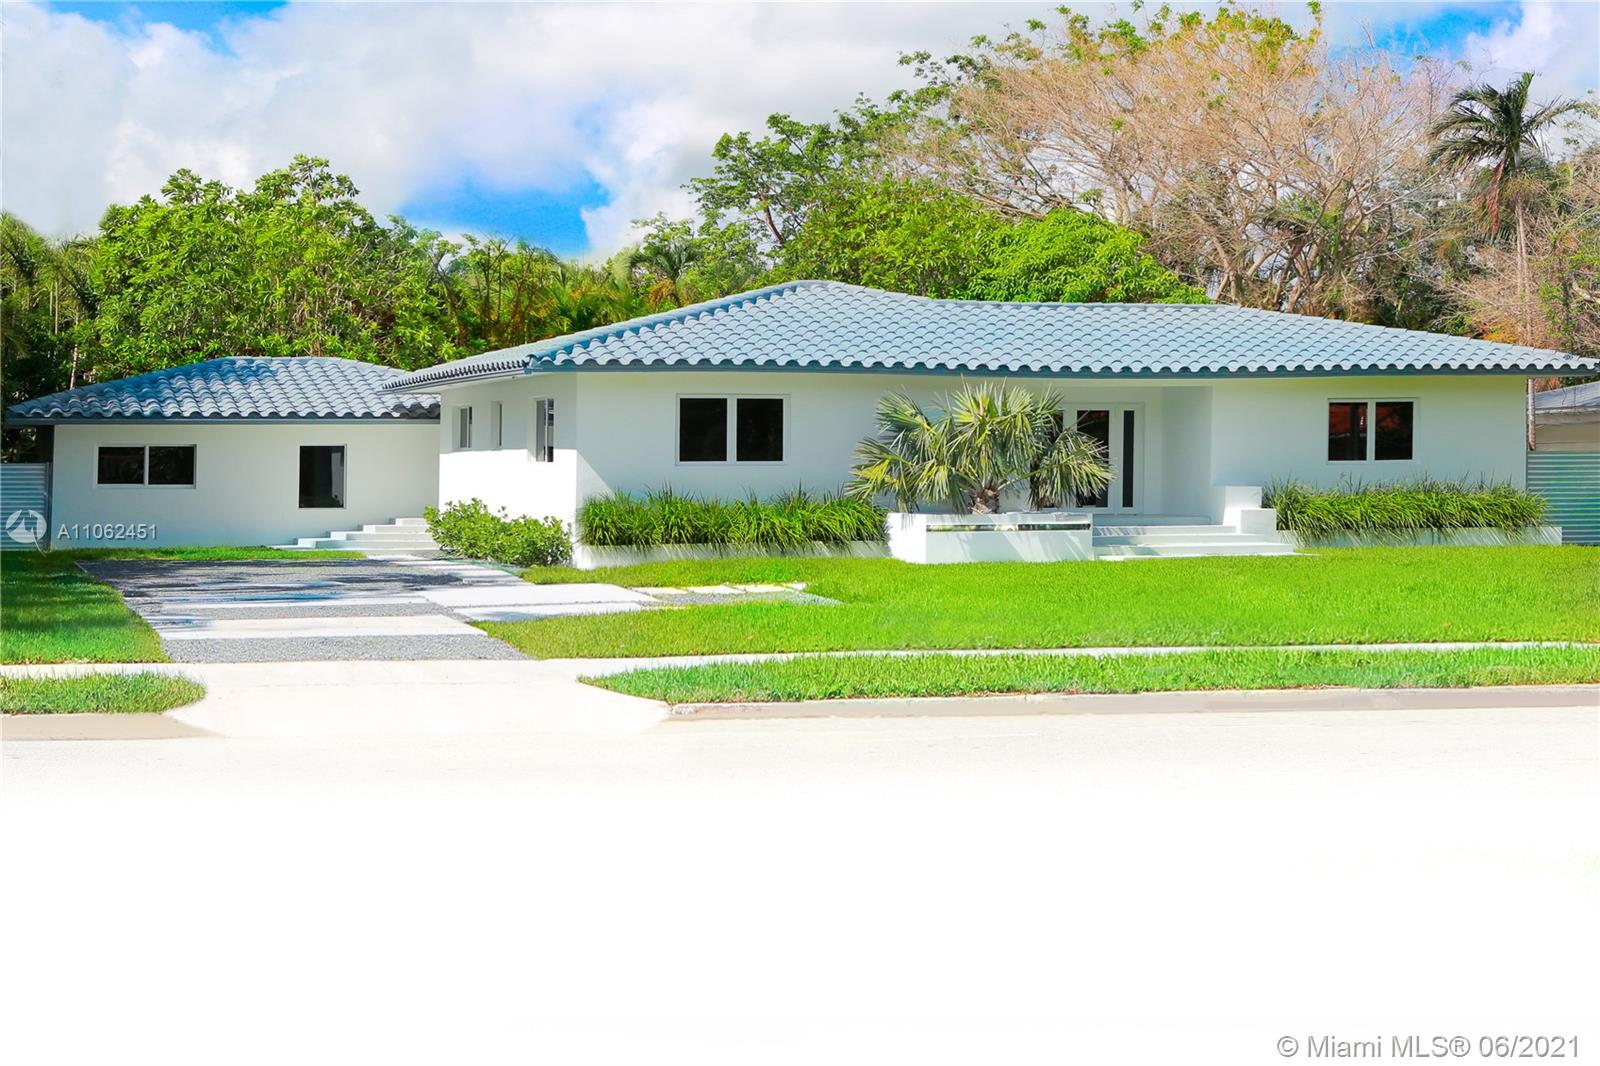 • NEW ON THE MARKET • NEXT TO VIZCAYA GARDENS & MILLIONAIRES ROW • ONE BLOCK FROM THE BAY • DOUBLE LOT • COMPLETELY RENOVATED • NEW IMPACT DOORS & WINDOWS • NEW KITCHEN • NEW BATHROOMS • NEW POOL & DECK • HUGE BACKYARD  • 14,000 SQ FT PROPERTY • 3 BEDROOMS  3.5 BATHROOMS • PLUS BONUS ROOM THAT MAY BE USED AS AN OFFICE / MEDIA ROOM / PLAYROOM OR EXTRA BEDROOM • OPEN FLOORPLAN OVERLOOKING POOL • NATURAL LIGHT THROUGHOUT • FLOOR TO CEILING WINDOWS • GROVE KEY MARINA IS 5 MINUTES AWAY • CURRENTLY RENTED • POSITIVE CASHFLOW • STRICT PRIVATE SHOWINGS